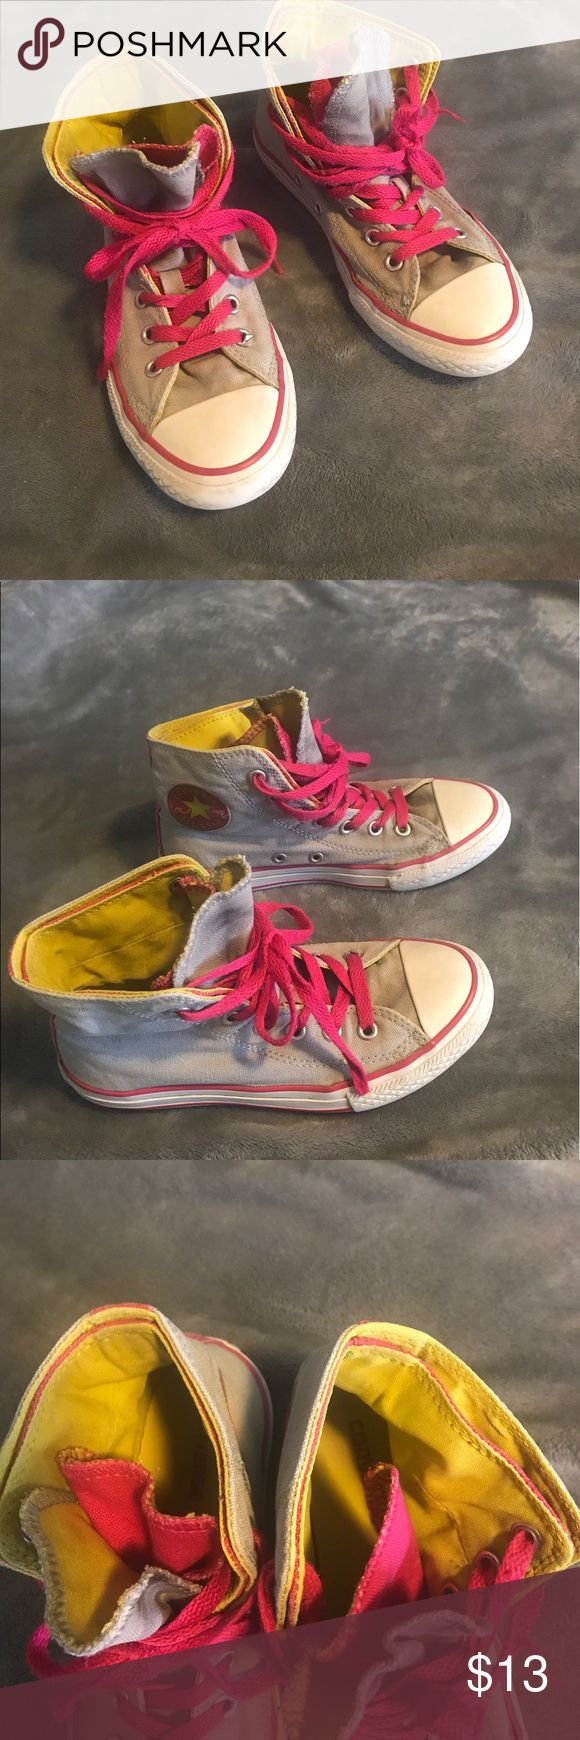 HUGE SALE Converse kids size 2 HUGE SALE! Closet clean out. Price is lowered for quick sale, FIRM SALE ENDS TONIGHT!  Converse high top kids size 2. Pink, yellow and gray. Good condition from smoke free home (see pictures). Lots of life left. Converse Shoes Sneakers